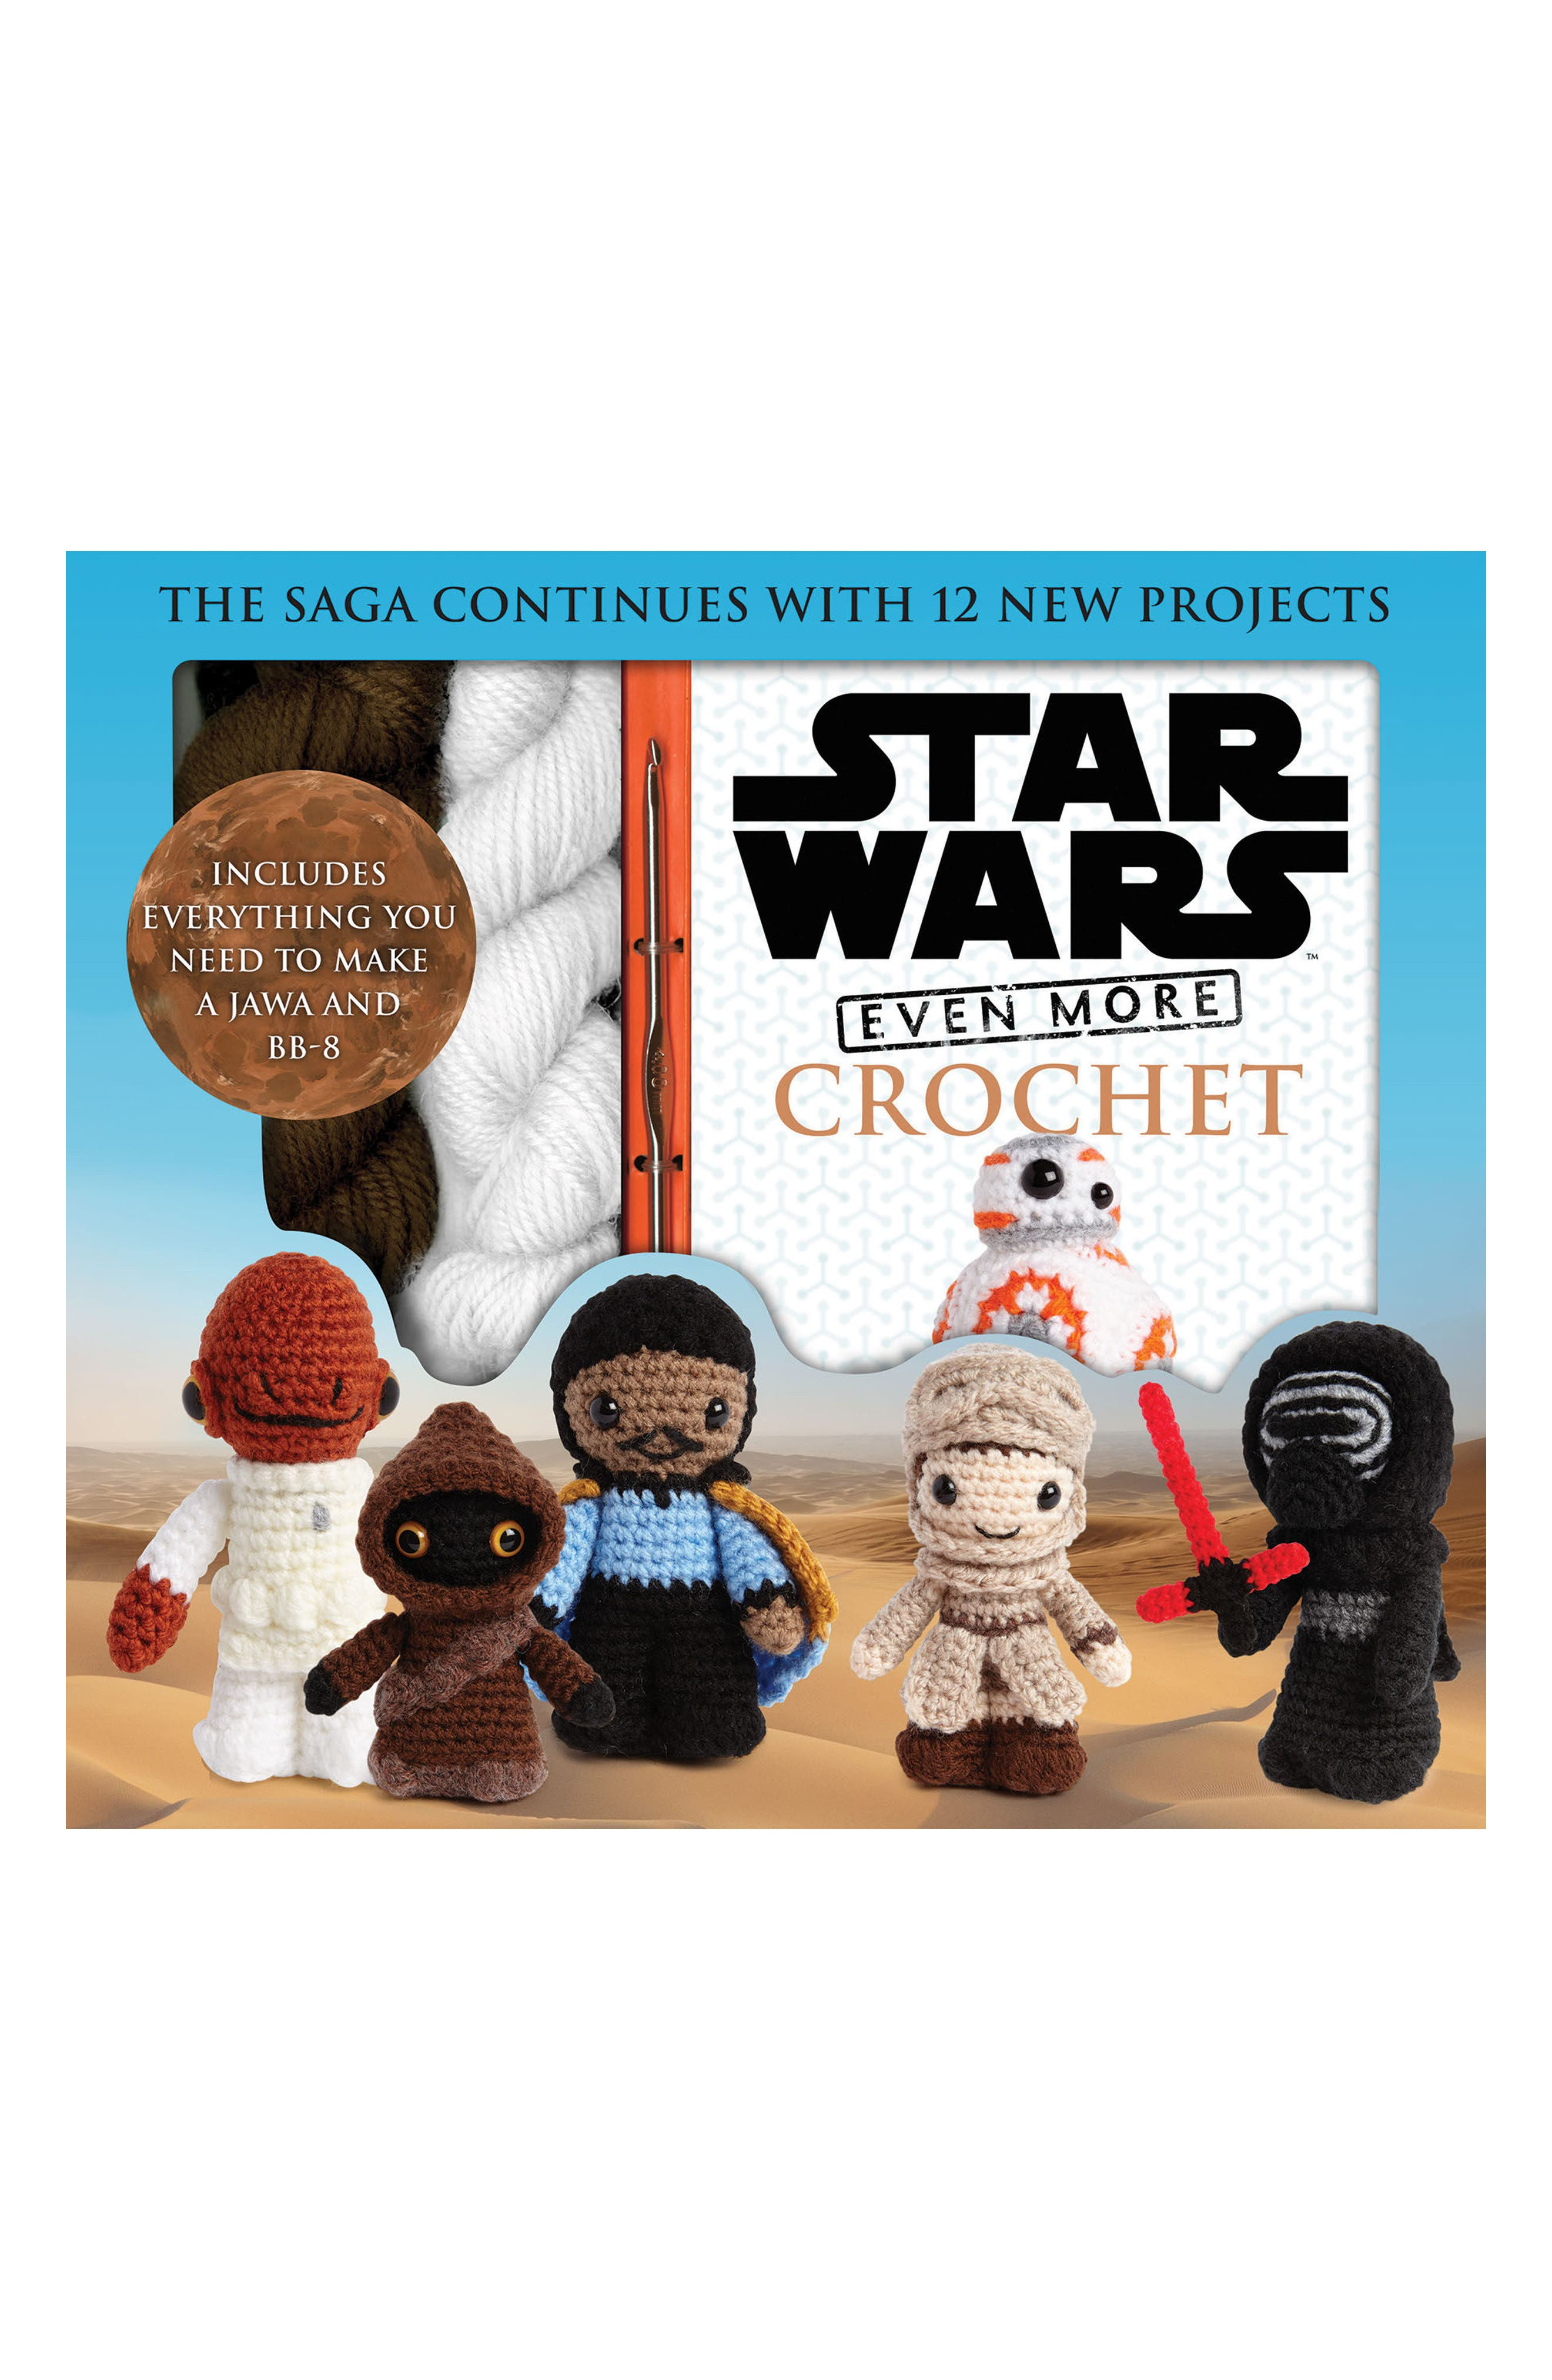 Star Wars Even More Crochet Book & Kit,                             Main thumbnail 1, color,                             100